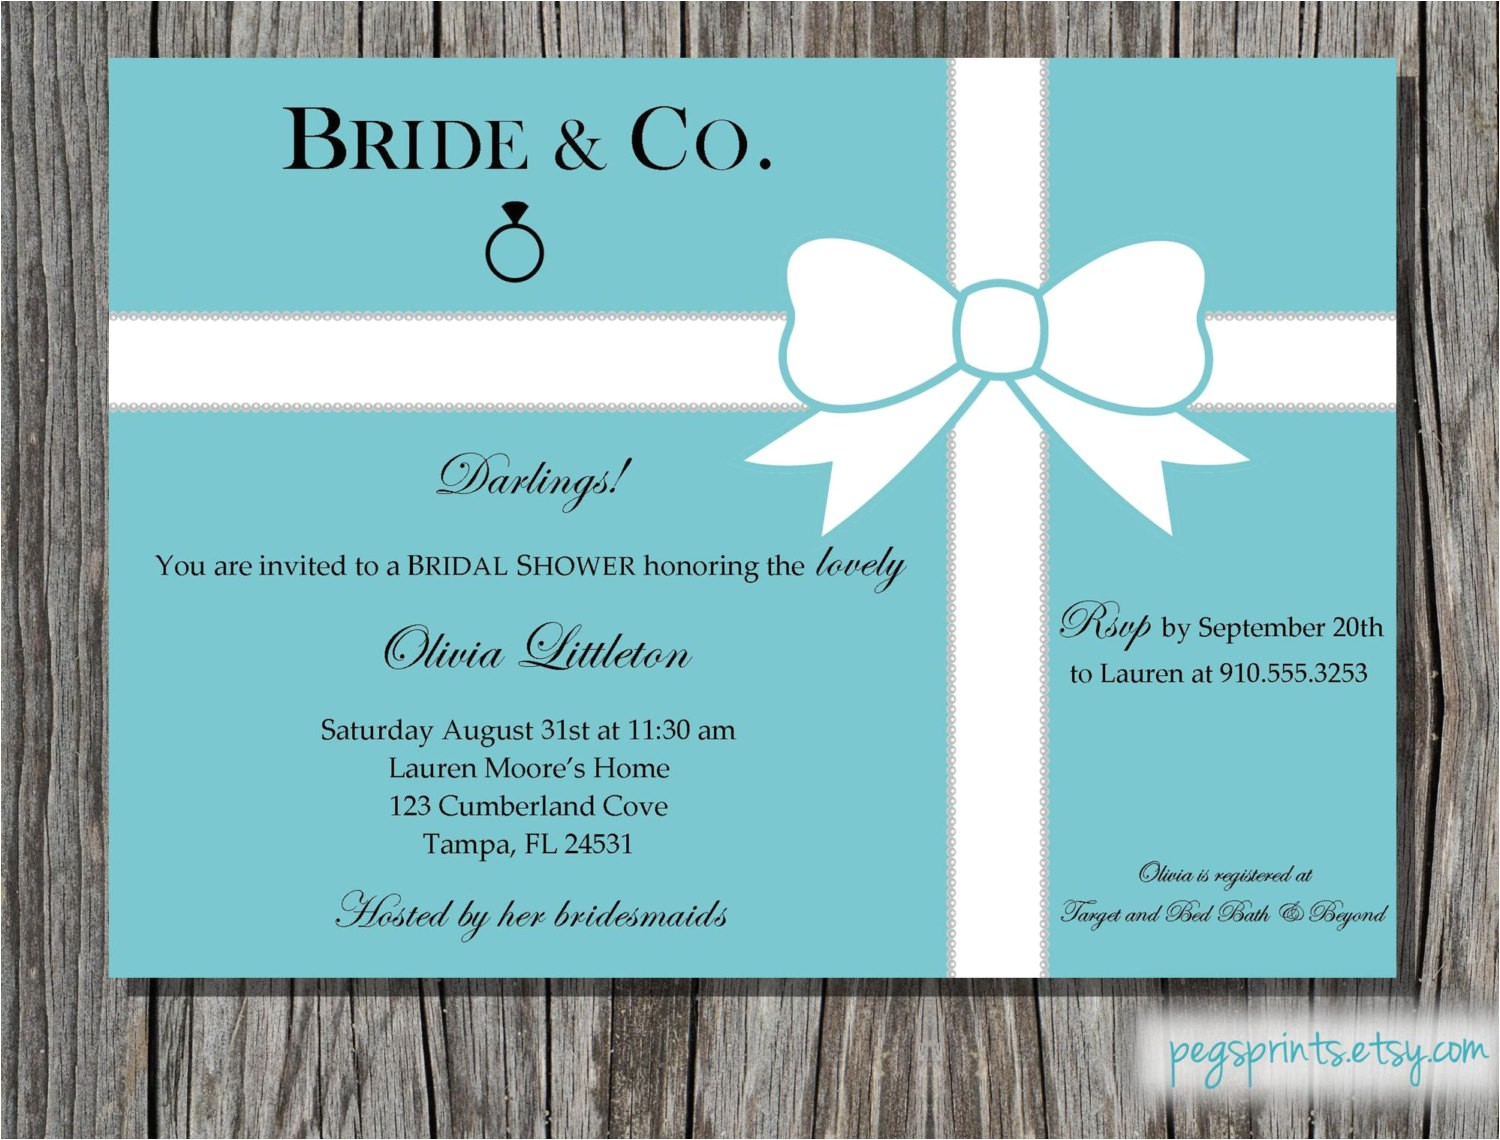 Breakfast at Tiffany S Bridal Shower Invitations Breakfast at Tiffany S Bridal Shower Invitation by Pegsprints